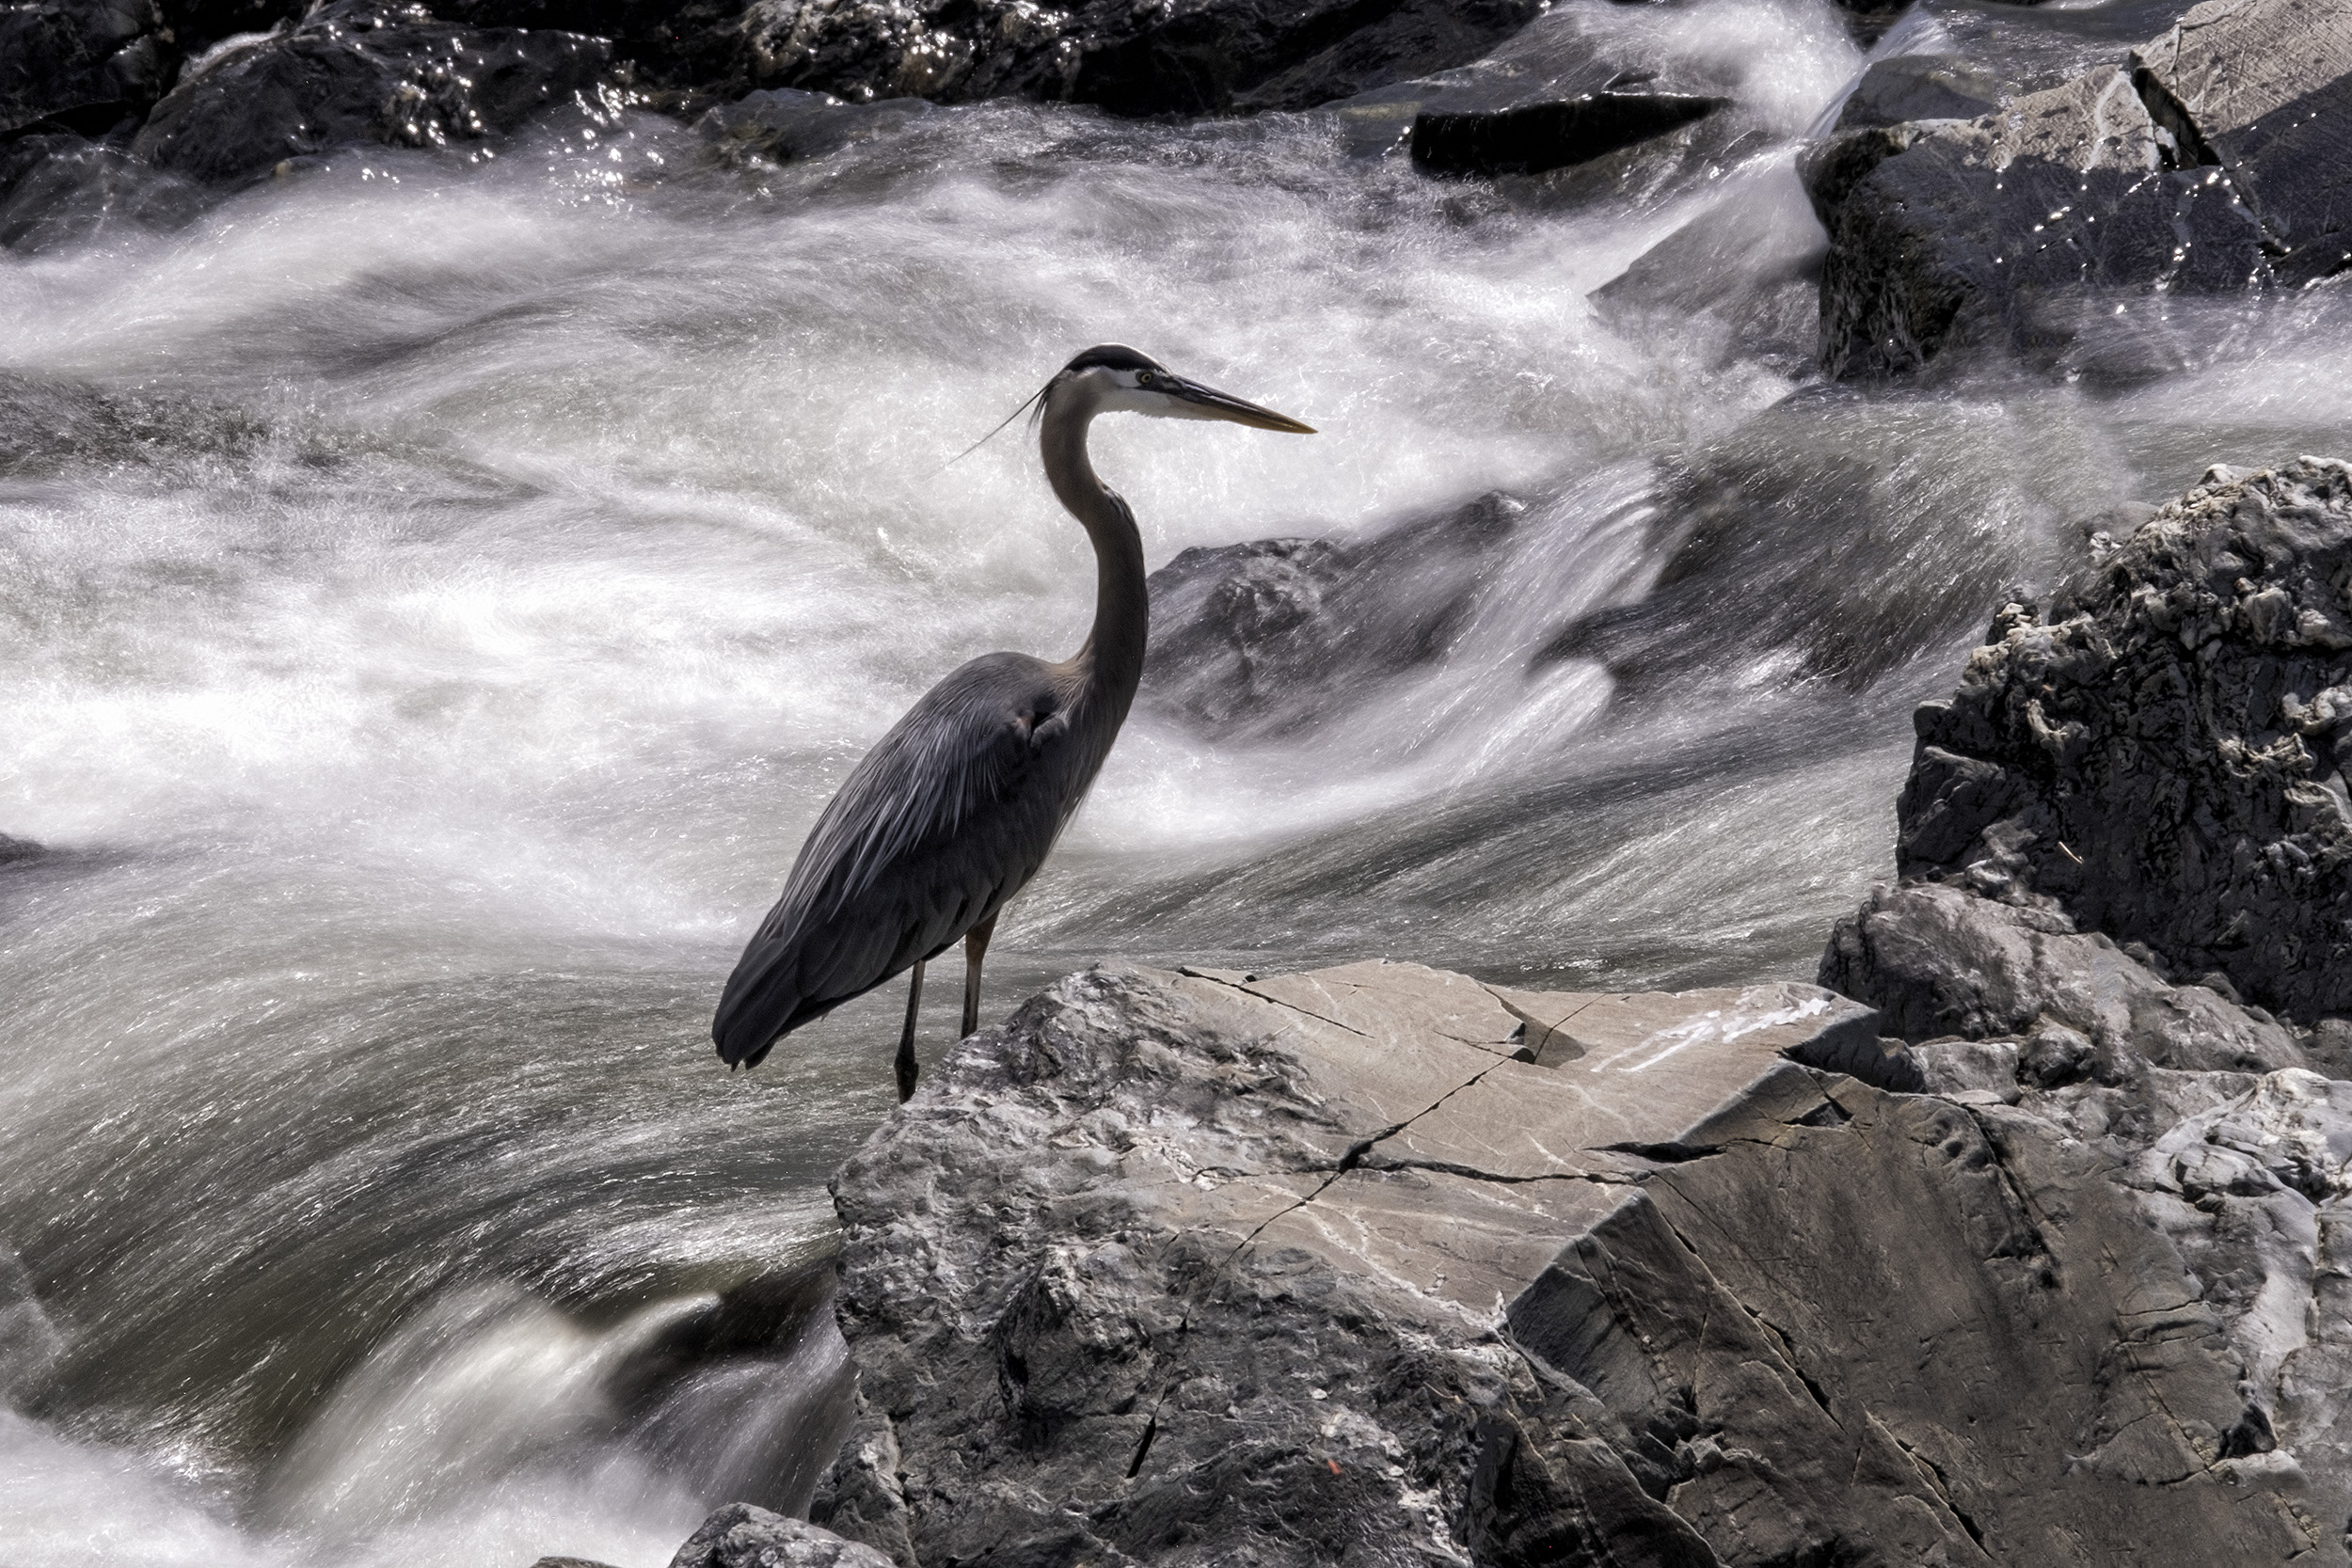 190521 Great Falls Heron 064-1.jpg